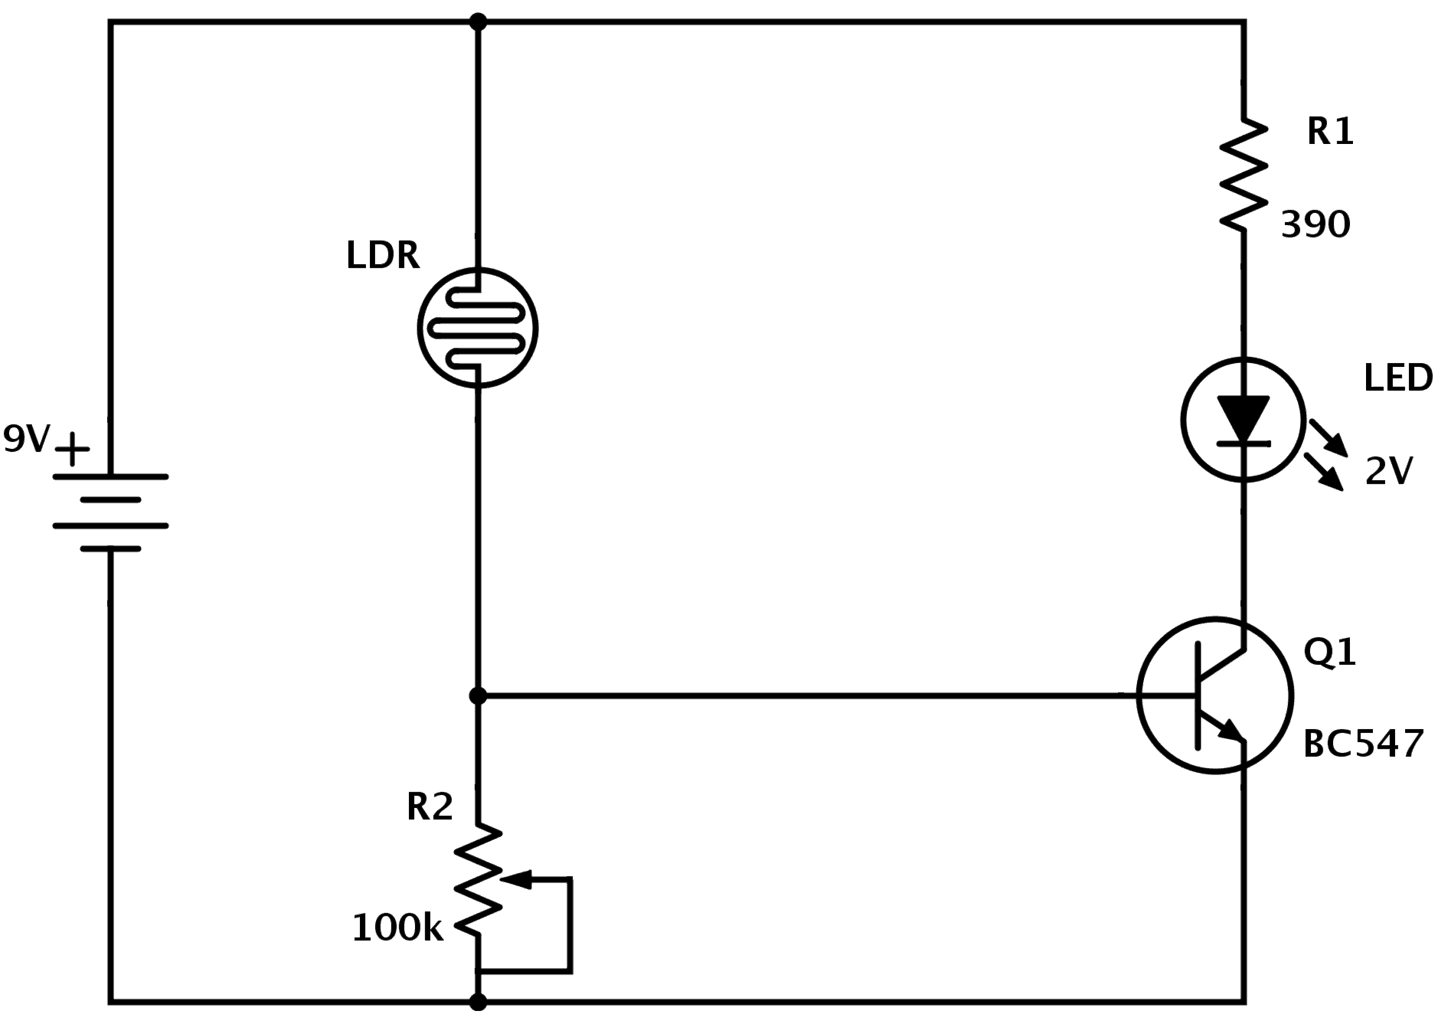 circuit diagram how to read and understand any schematic rh build electronic circuits com Parallel Circuit Diagram Electronic Circuit Diagrams